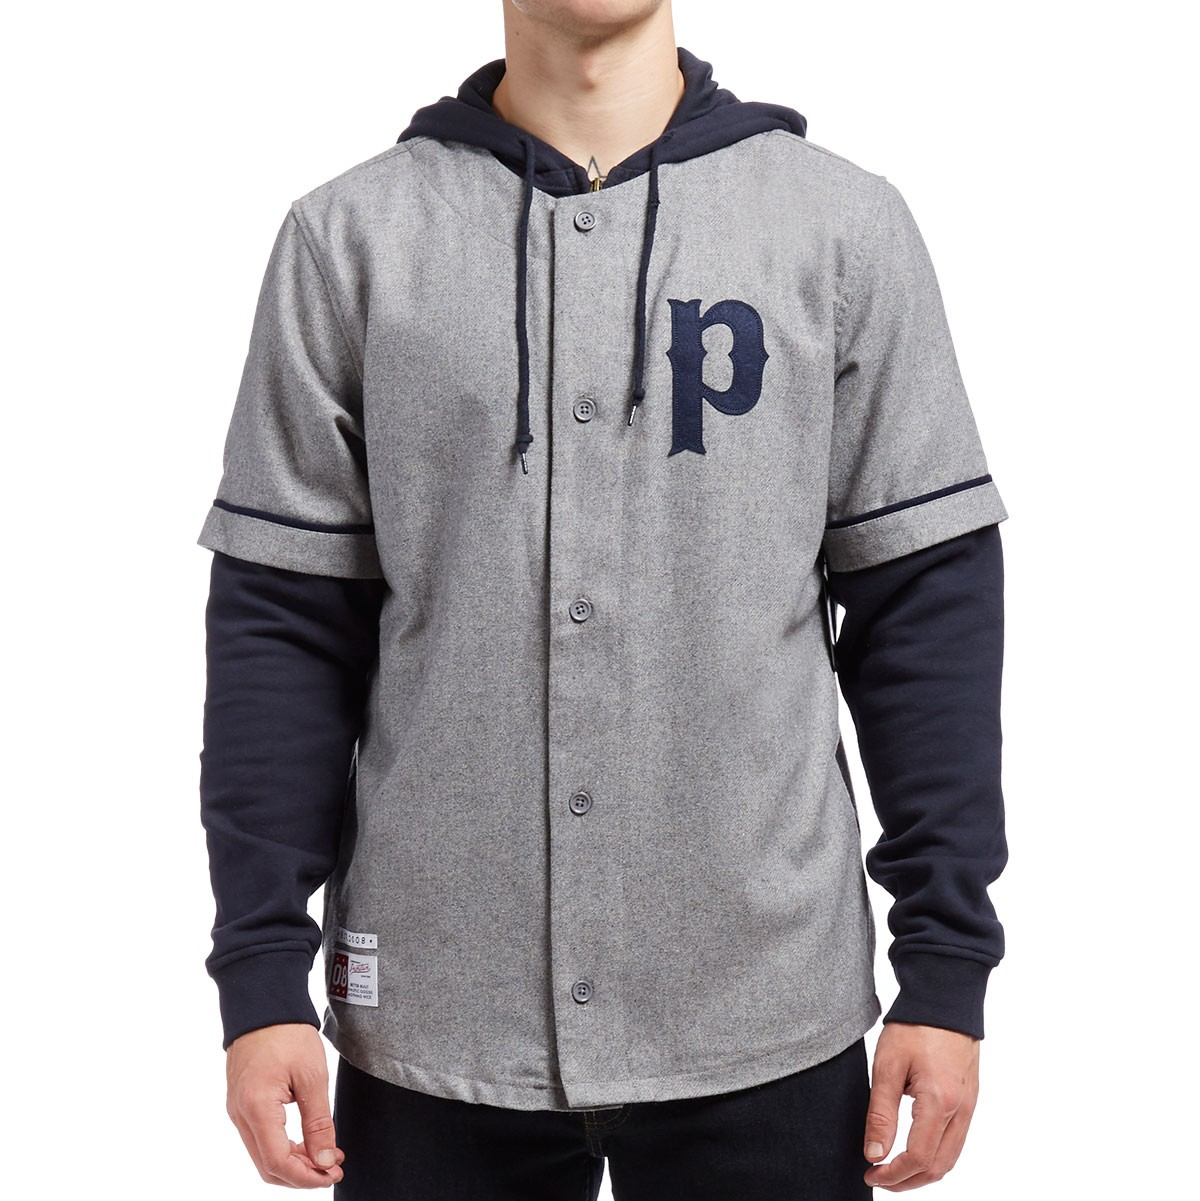 jersey hoodie